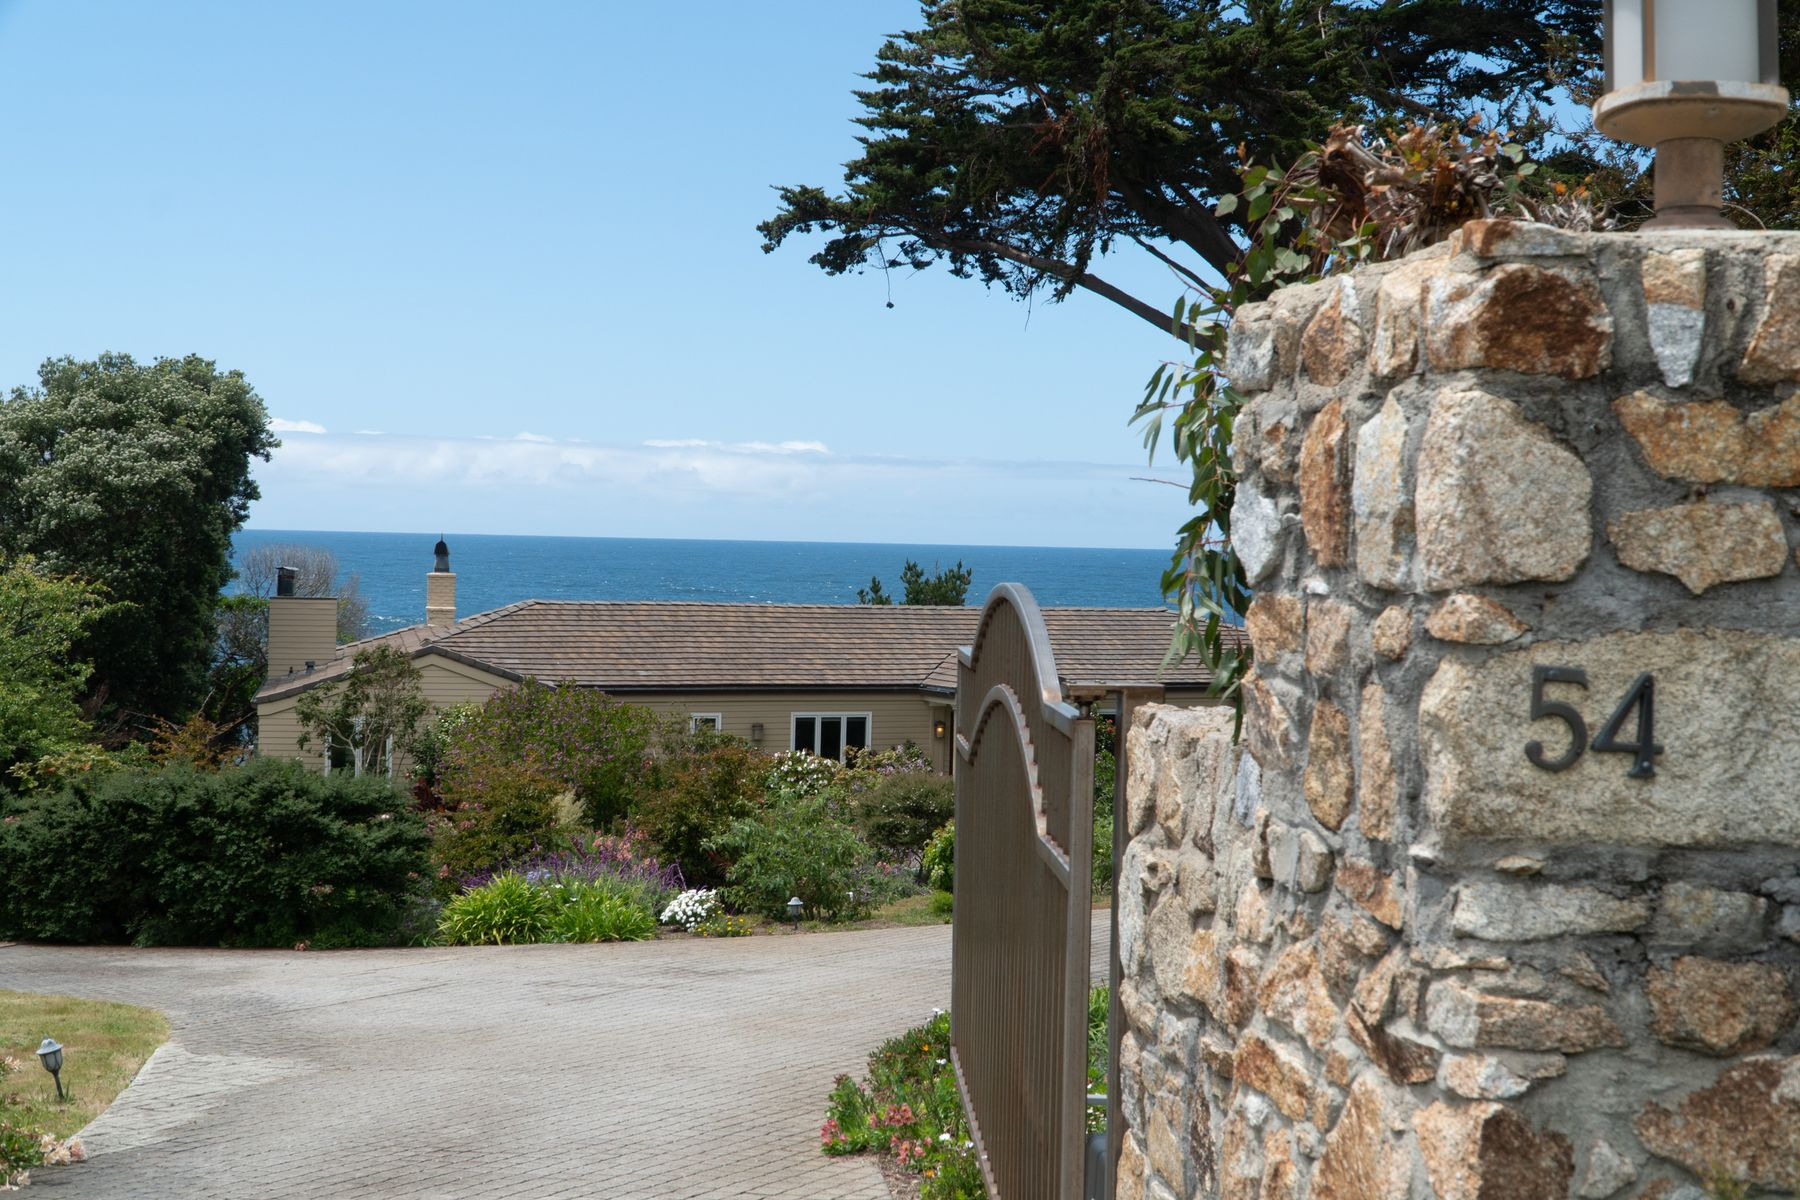 Single Family Homes for Sale at Spectacular Ocean Front Property 54 Yankee Point Drive Carmel, California 93923 United States